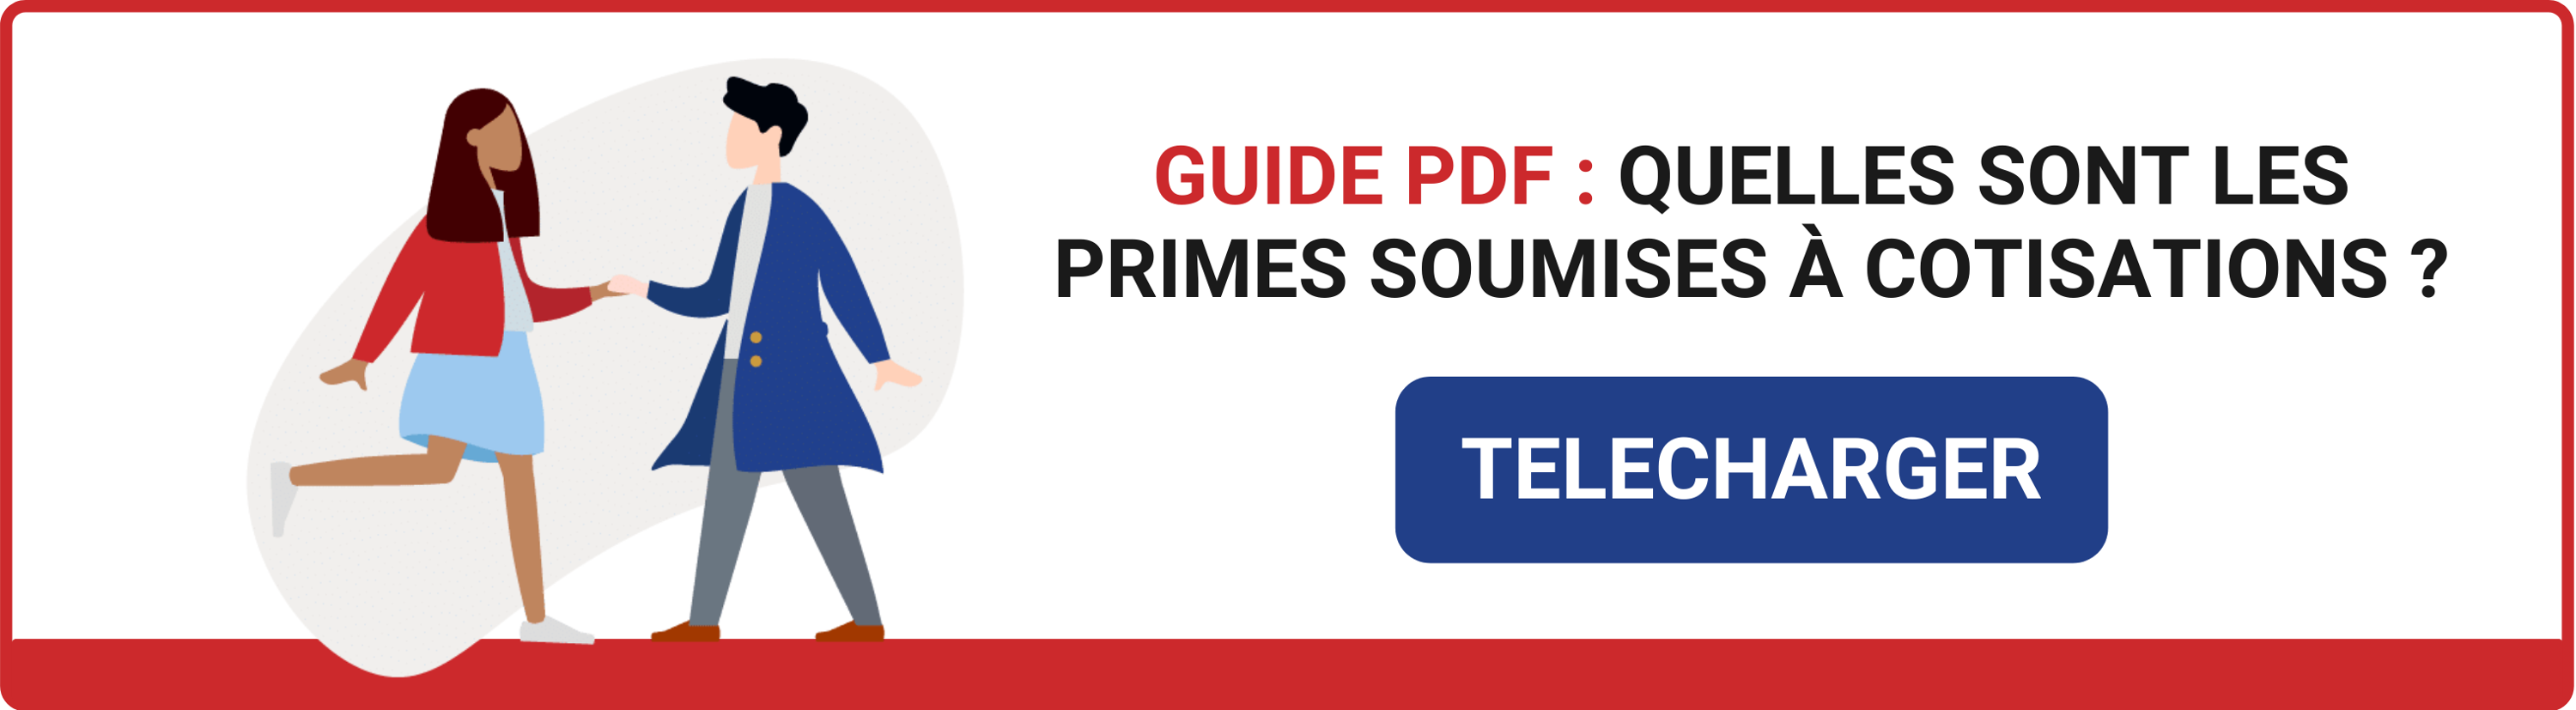 Guide_Primes-Cotisations